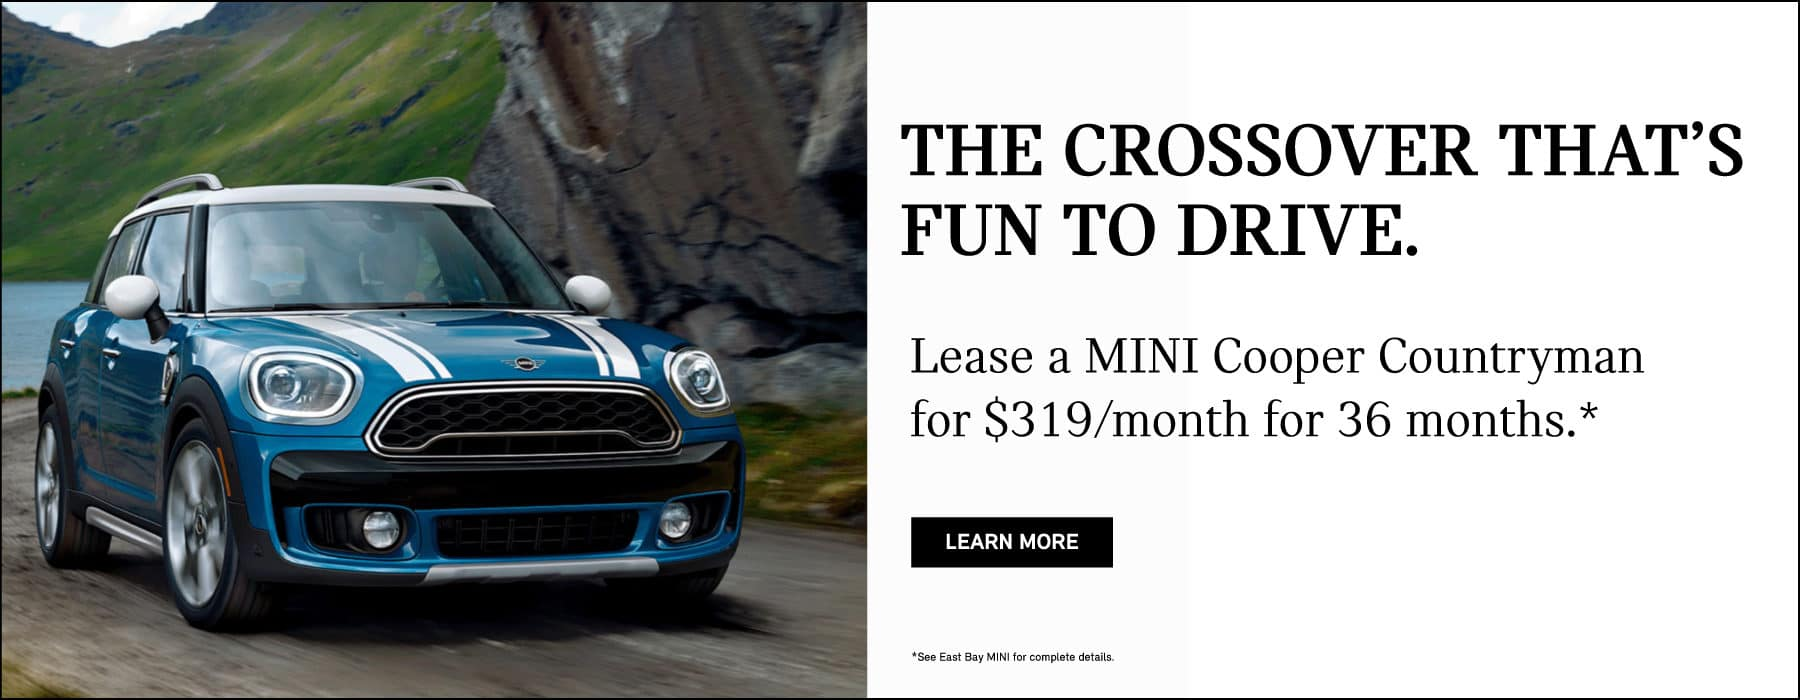 The crossver that is fun to drive. Lease a MINI Cooper Countryman for $319 per month for 36 months. learn more button. Blue MINI Cooper Countryman driving on dirt road.